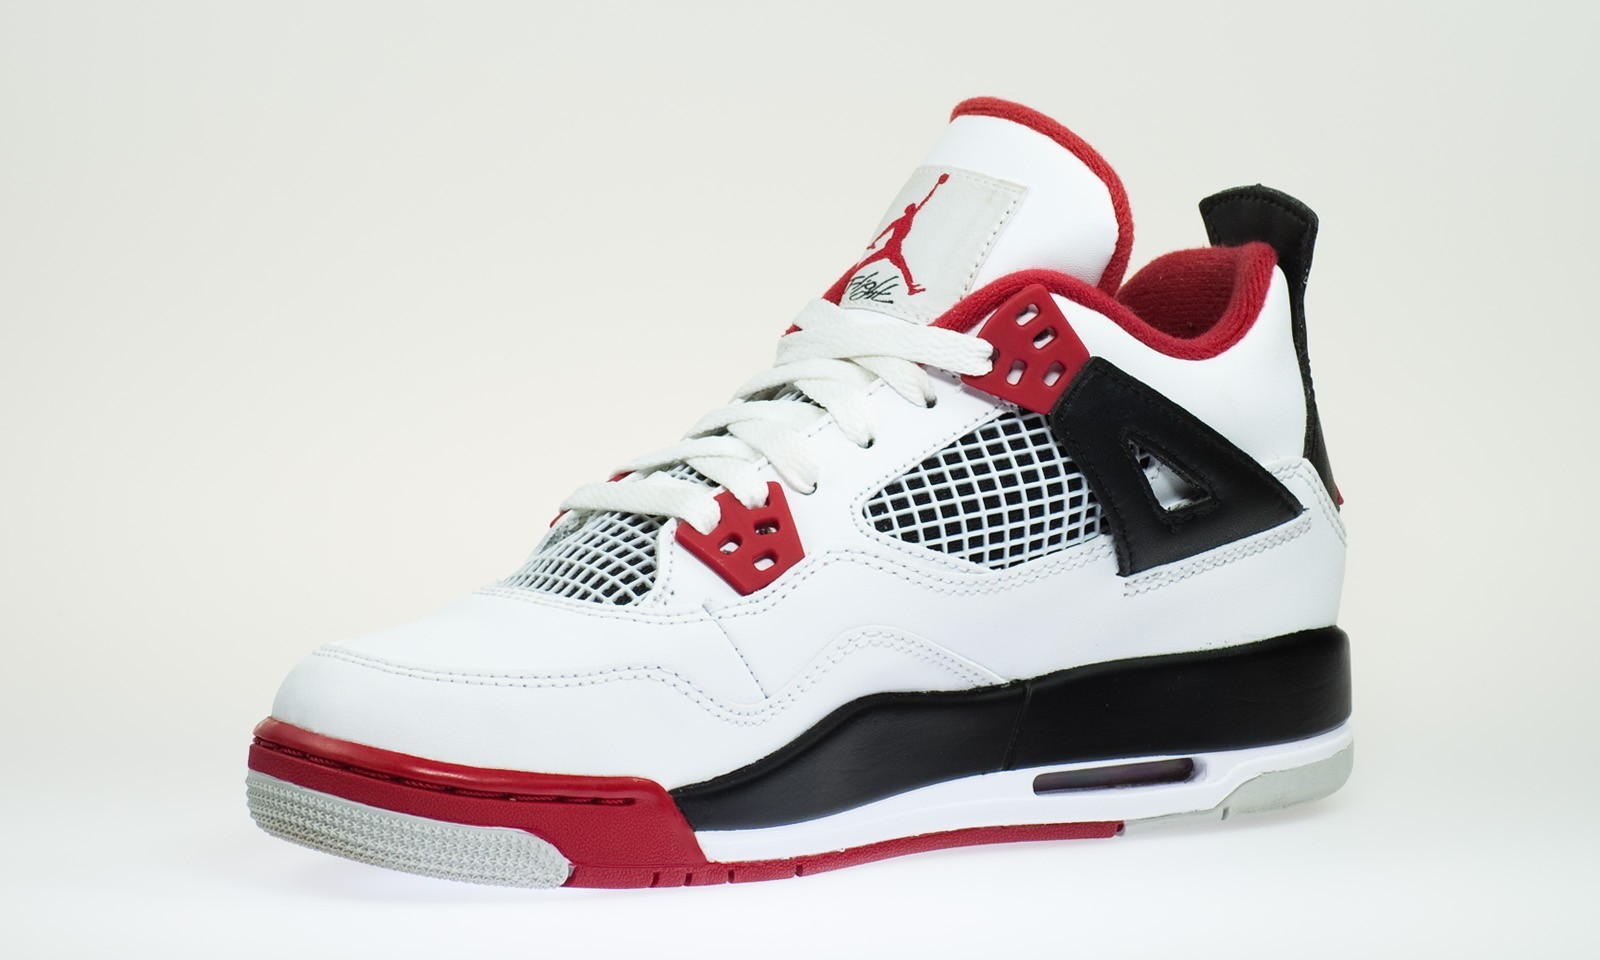 Air Jordan 4(IV) Retro - GS - White Varsity Red Black Basketball Shoes 408452-110